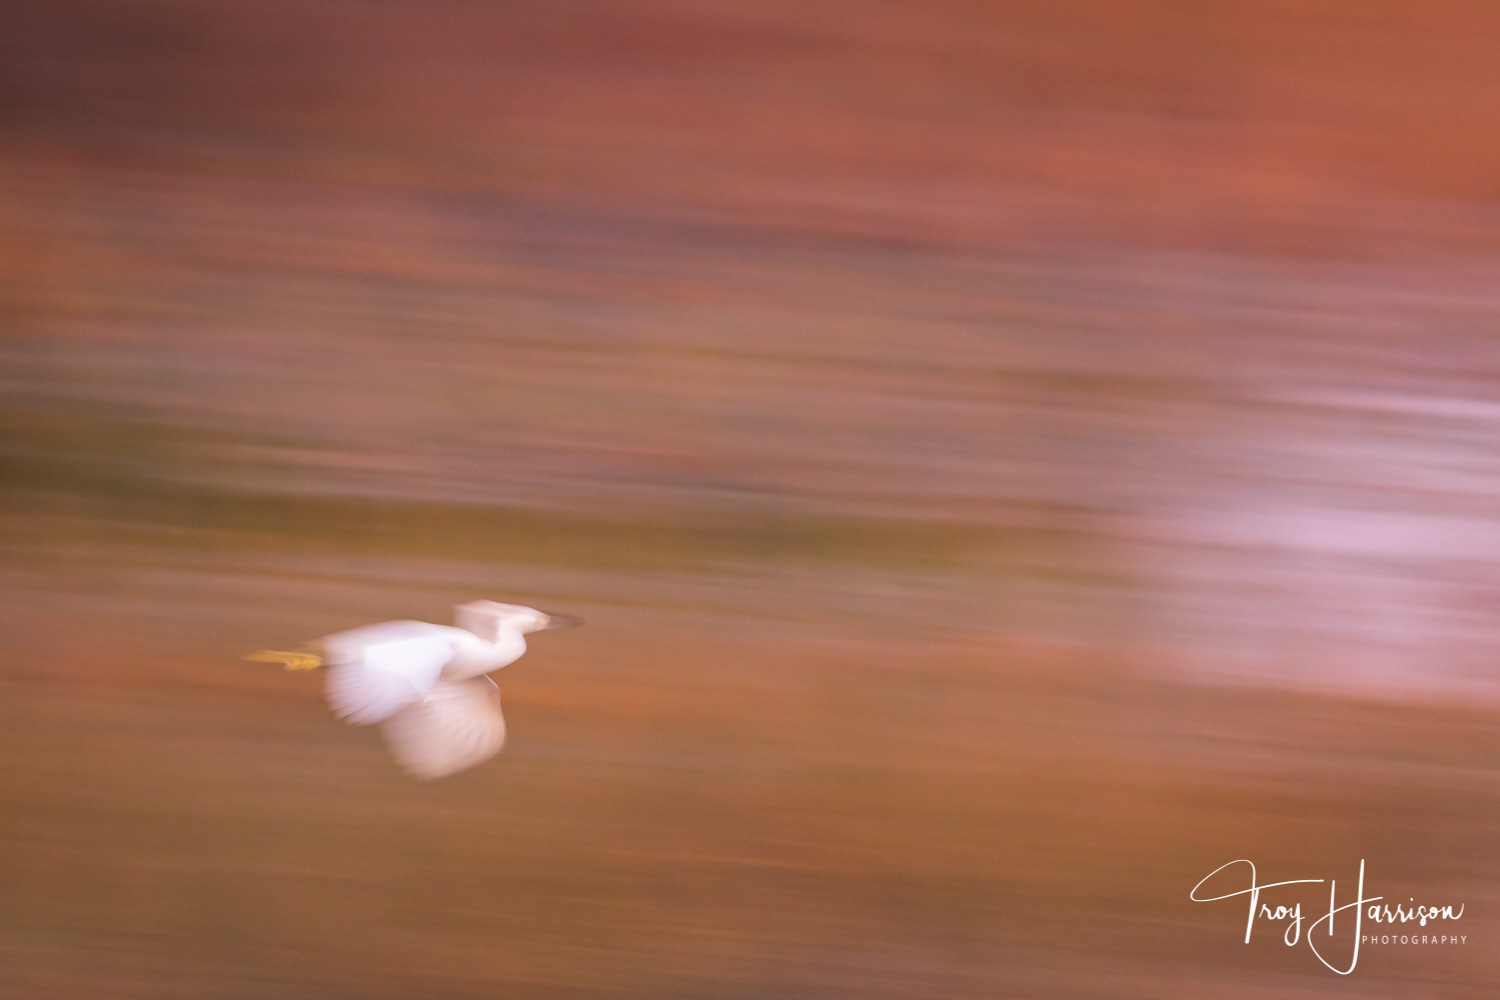 1 - Motion Blur, Everglades 2018, img 2290.jpg